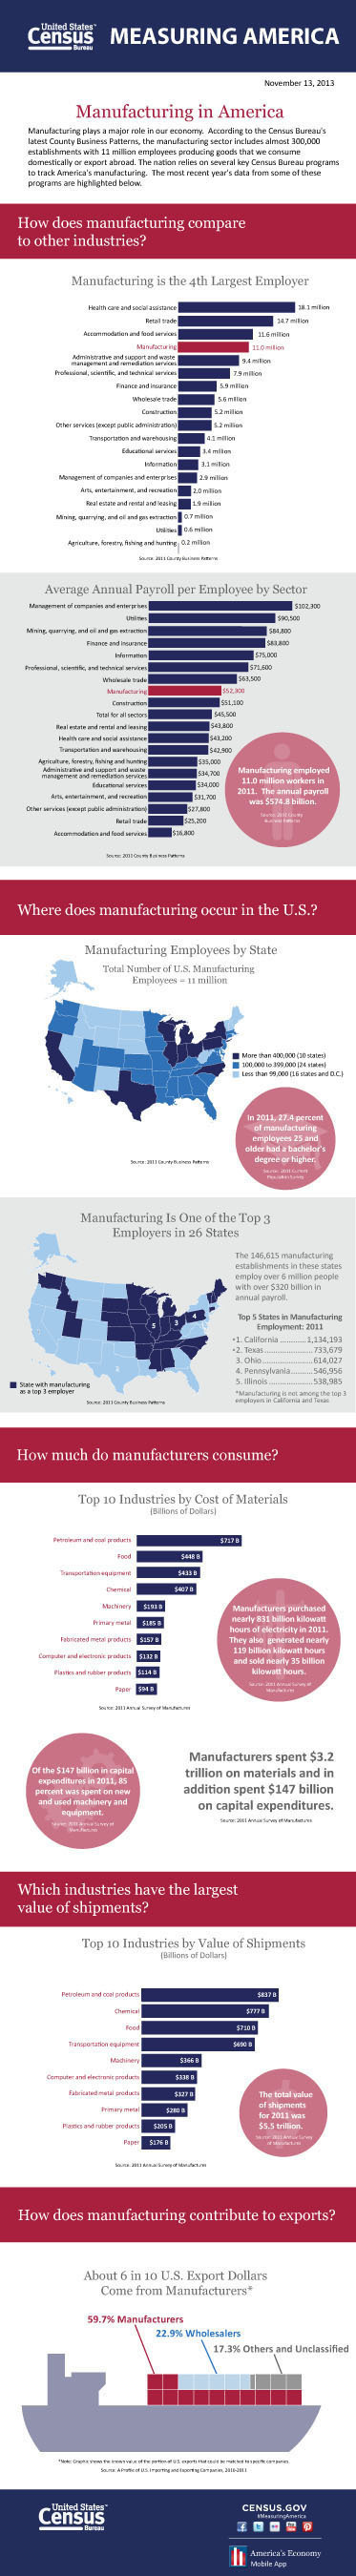 "A new U.S. Census Bureau infographic, ""Manufacturing in America,"" focuses on the scope of manufacturing, its importance as a major employer and its concentrations throughout the country. The infographic highlights a wide range of statistics from sources such as County Business Patterns and Annual Survey of Manufactures. With almost 300,000 establishments and 11 million employees, manufacturing plays a major role in the nation's economy. The most recent year's data from some of these programs are highlighted. Internet address: ..."